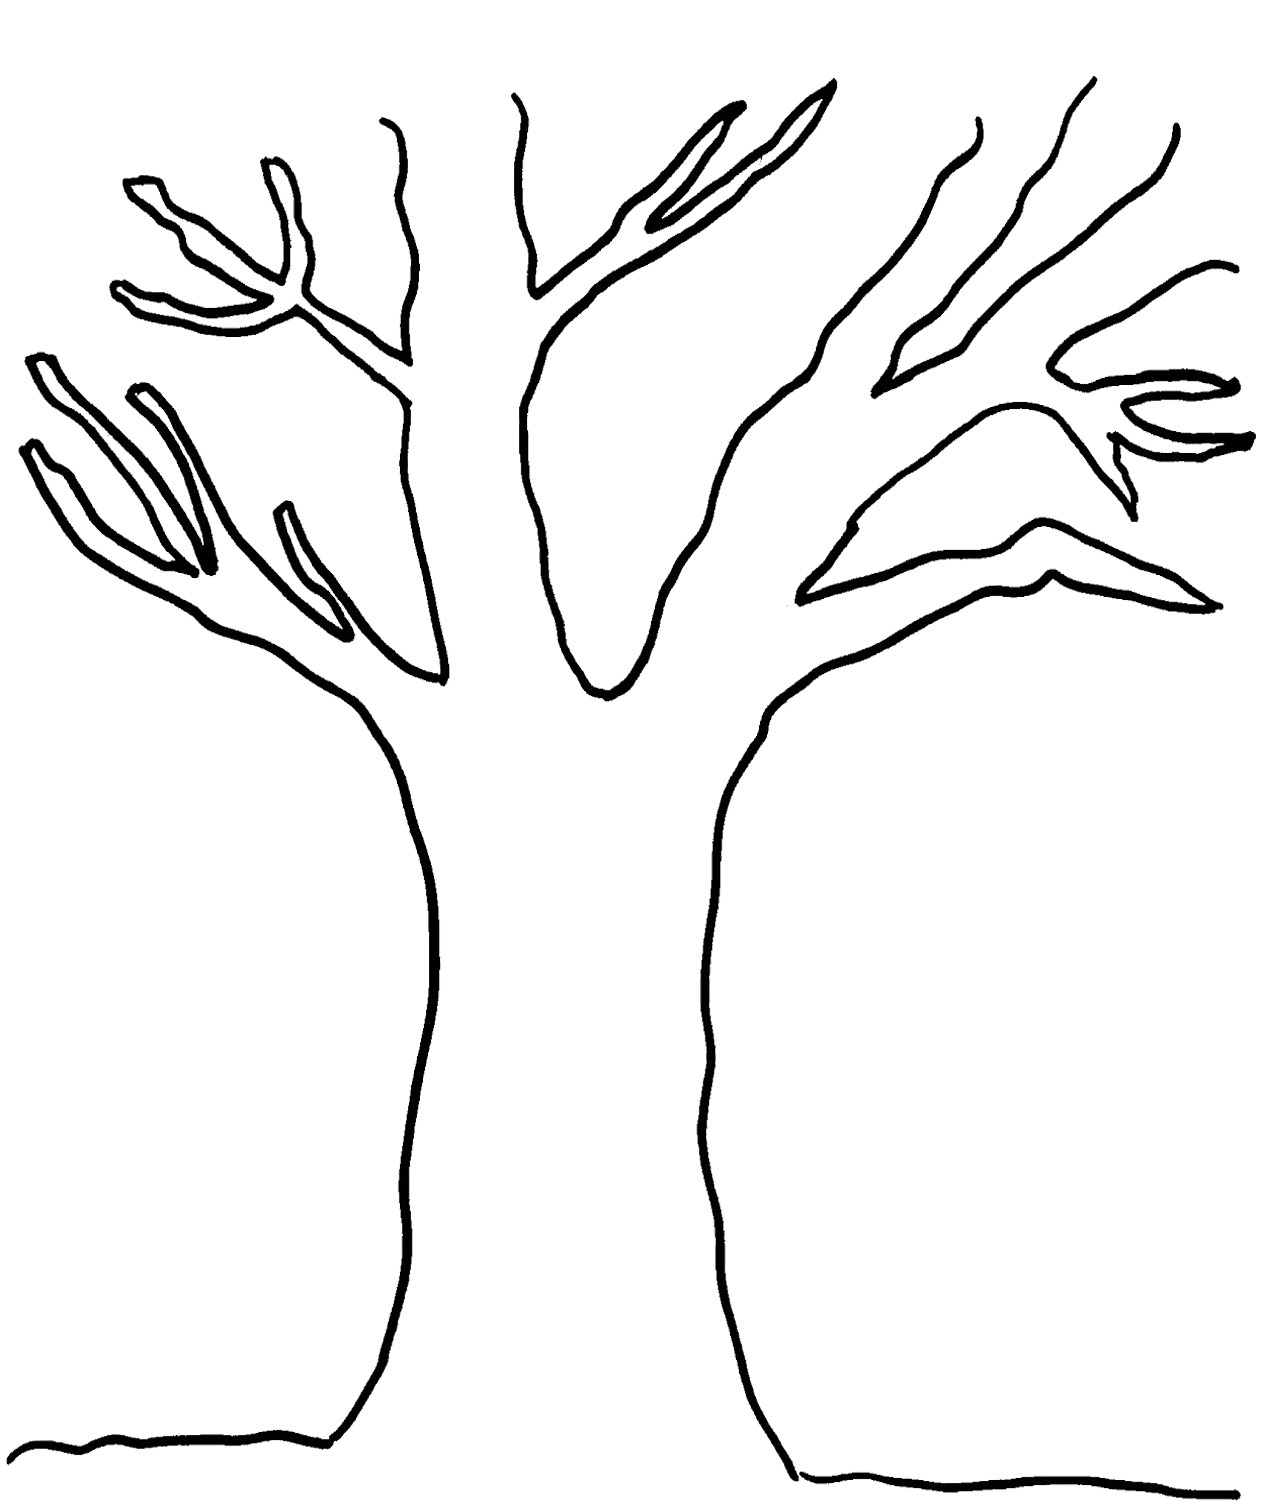 Free Printable Pictures Of Trees, Download Free Clip Art, Free Clip - Free Printable Palm Tree Template